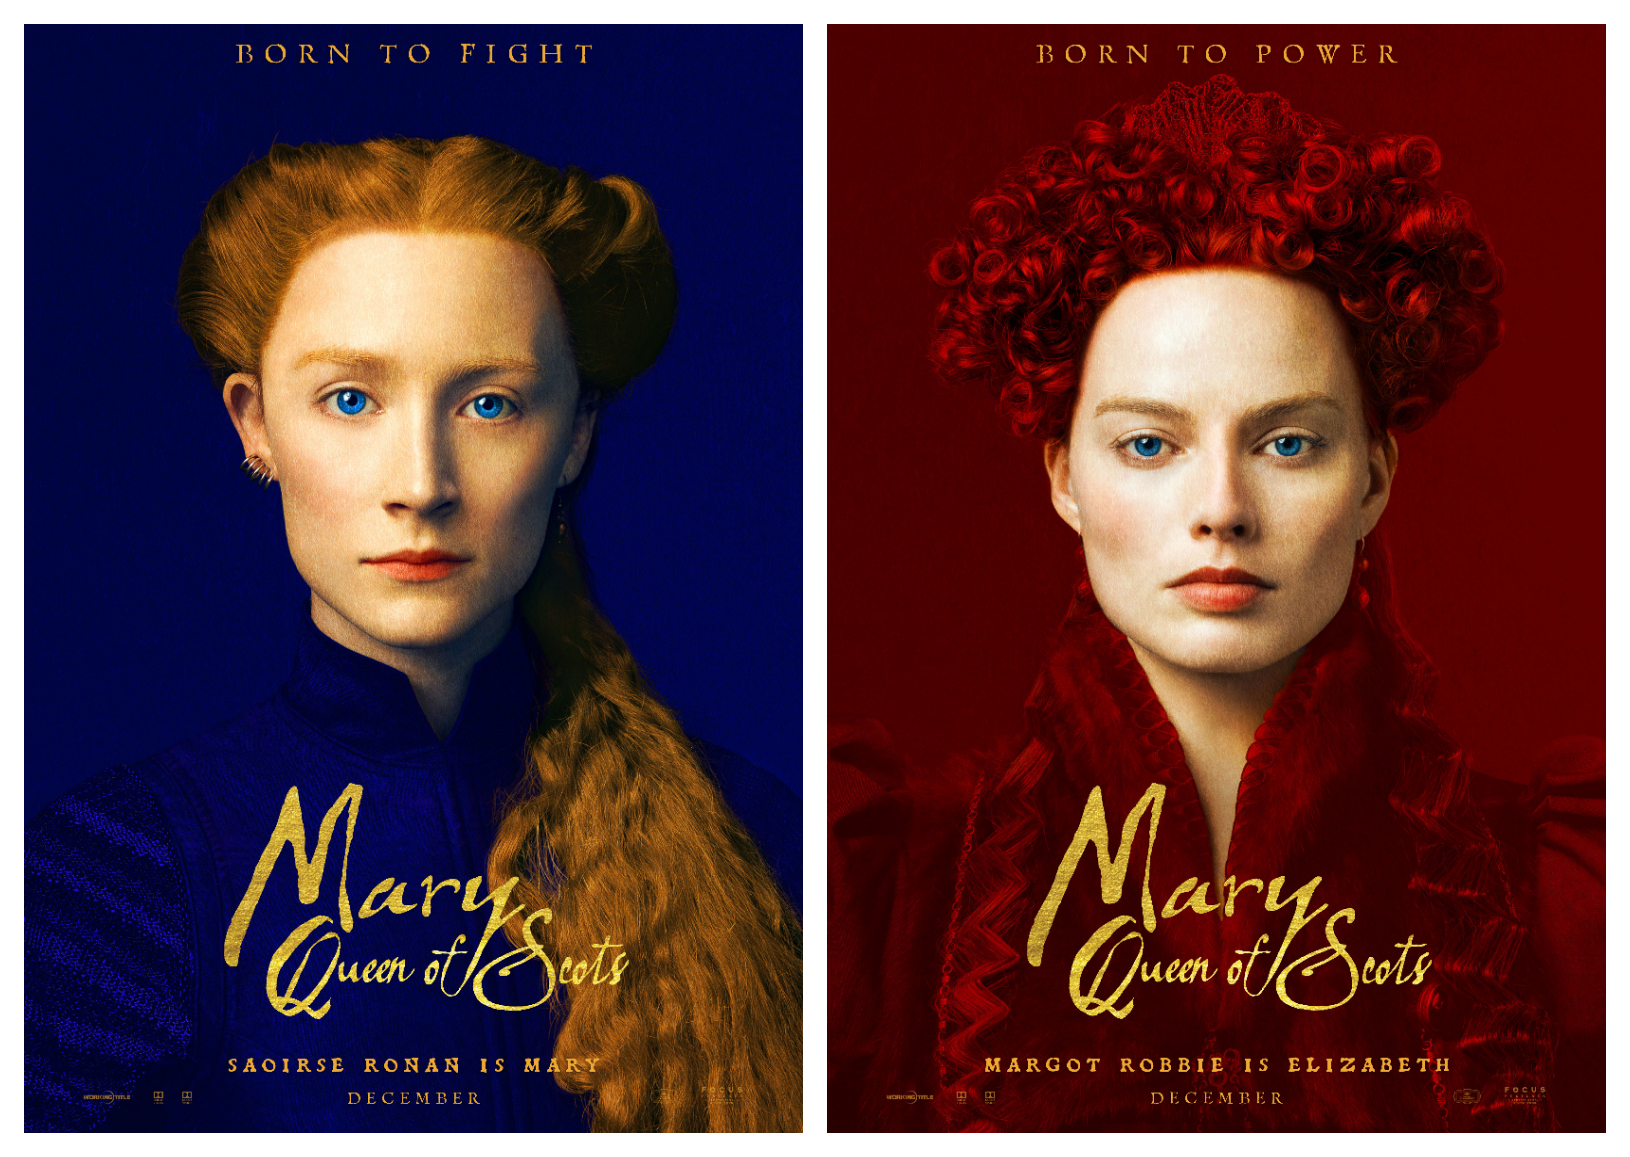 mary-queen-of-scots-posters.jpg